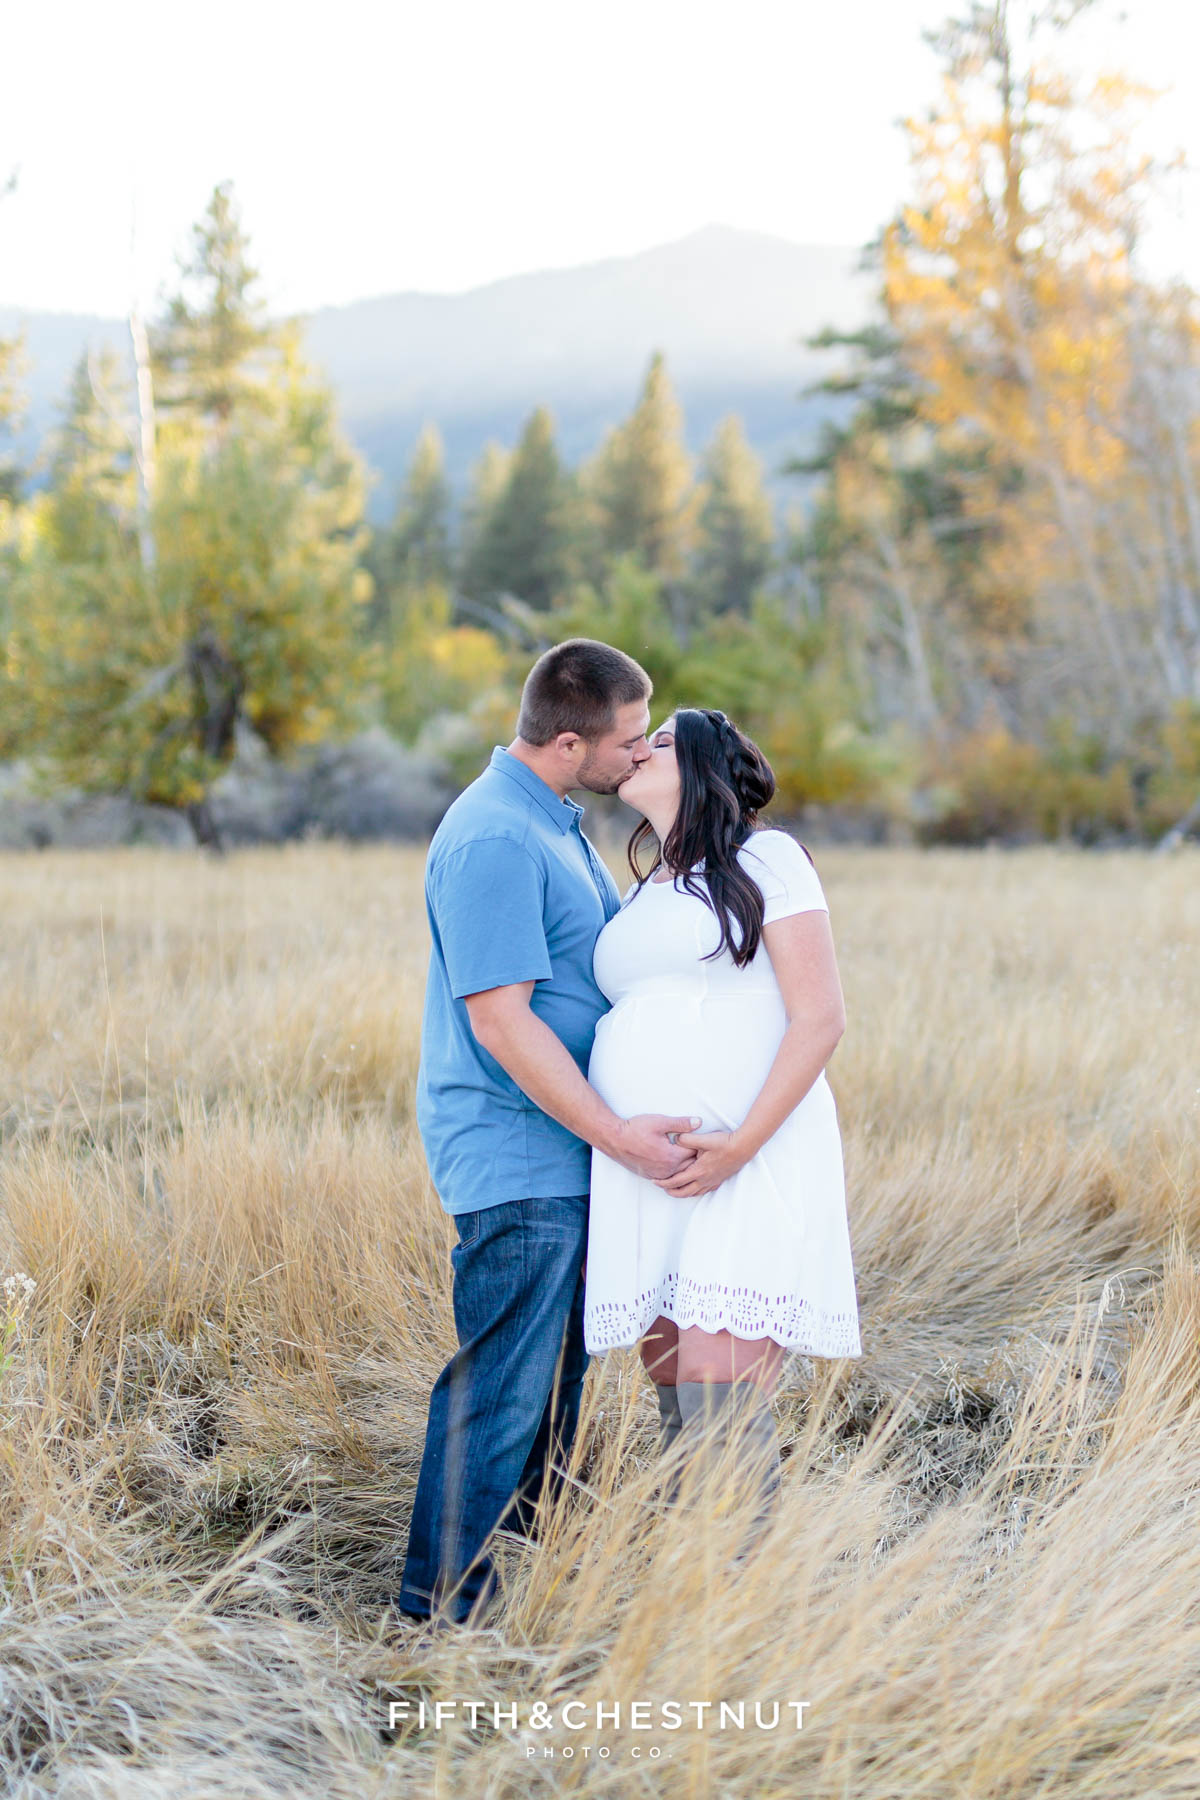 Expecting couple kiss in an open field with mountains and trees in the background for fall maternity portraits by Reno Maternity Photographer